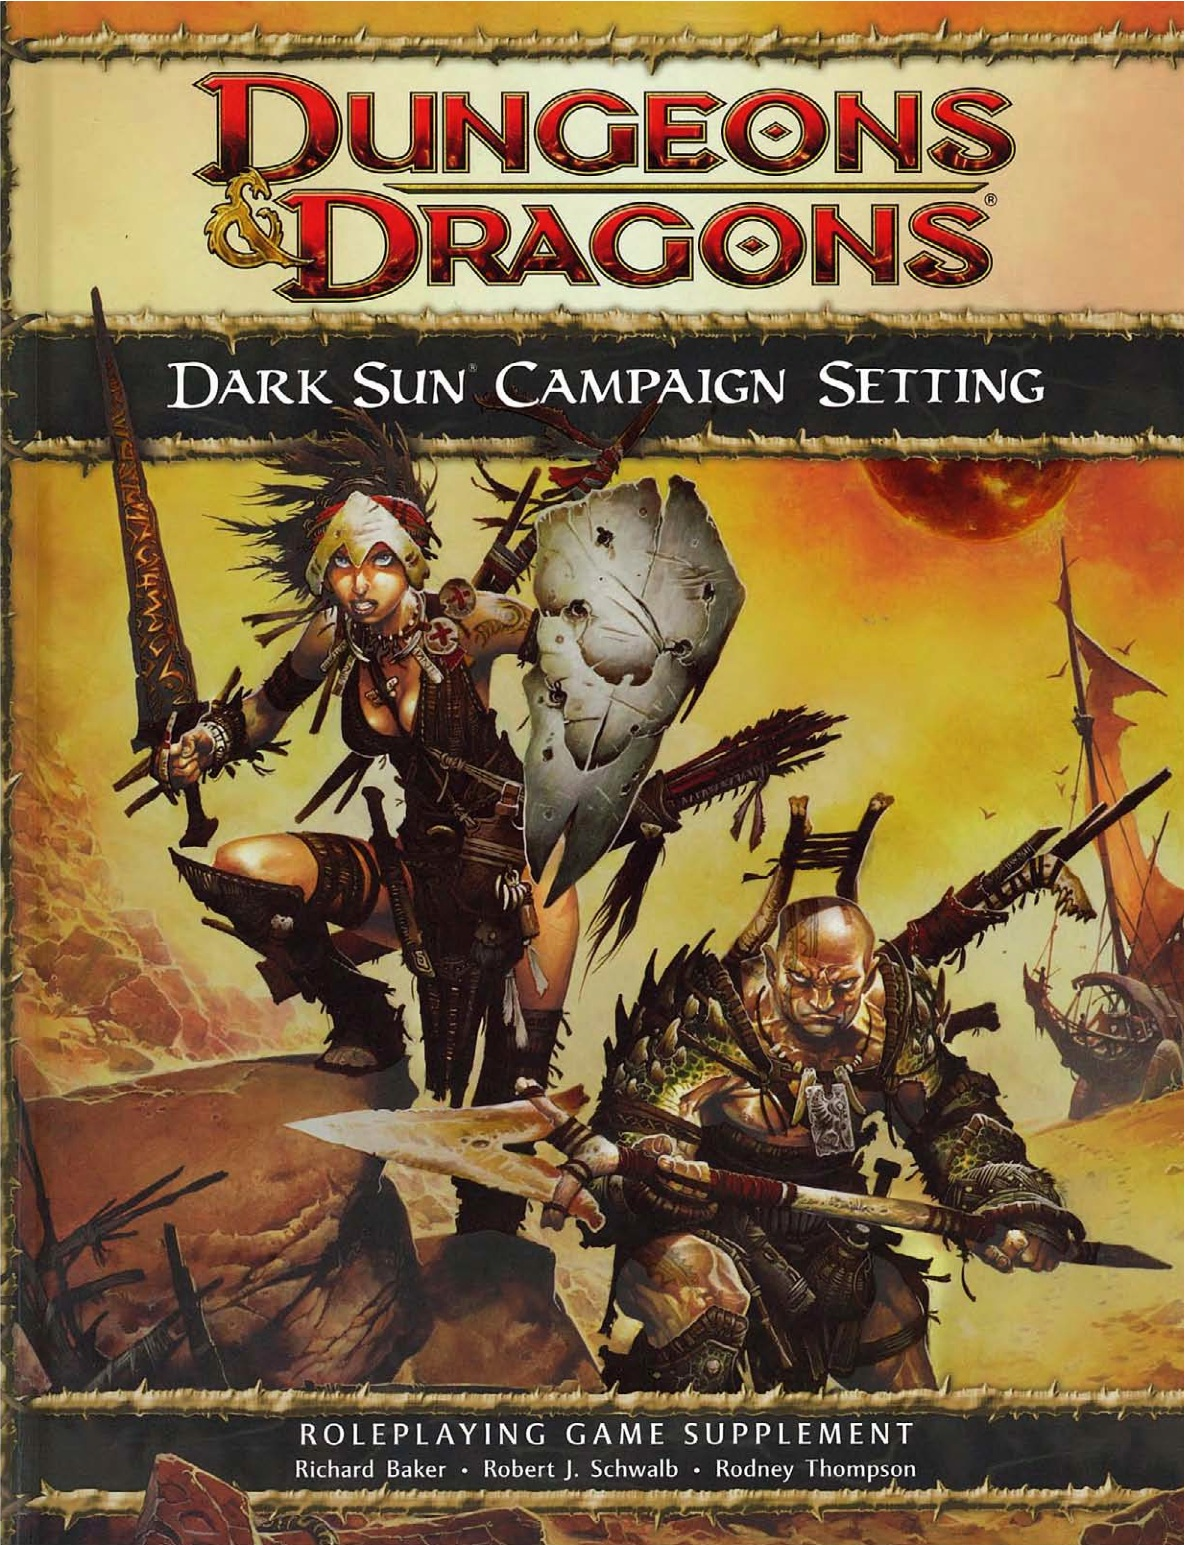 Dark sun campaign setting cover